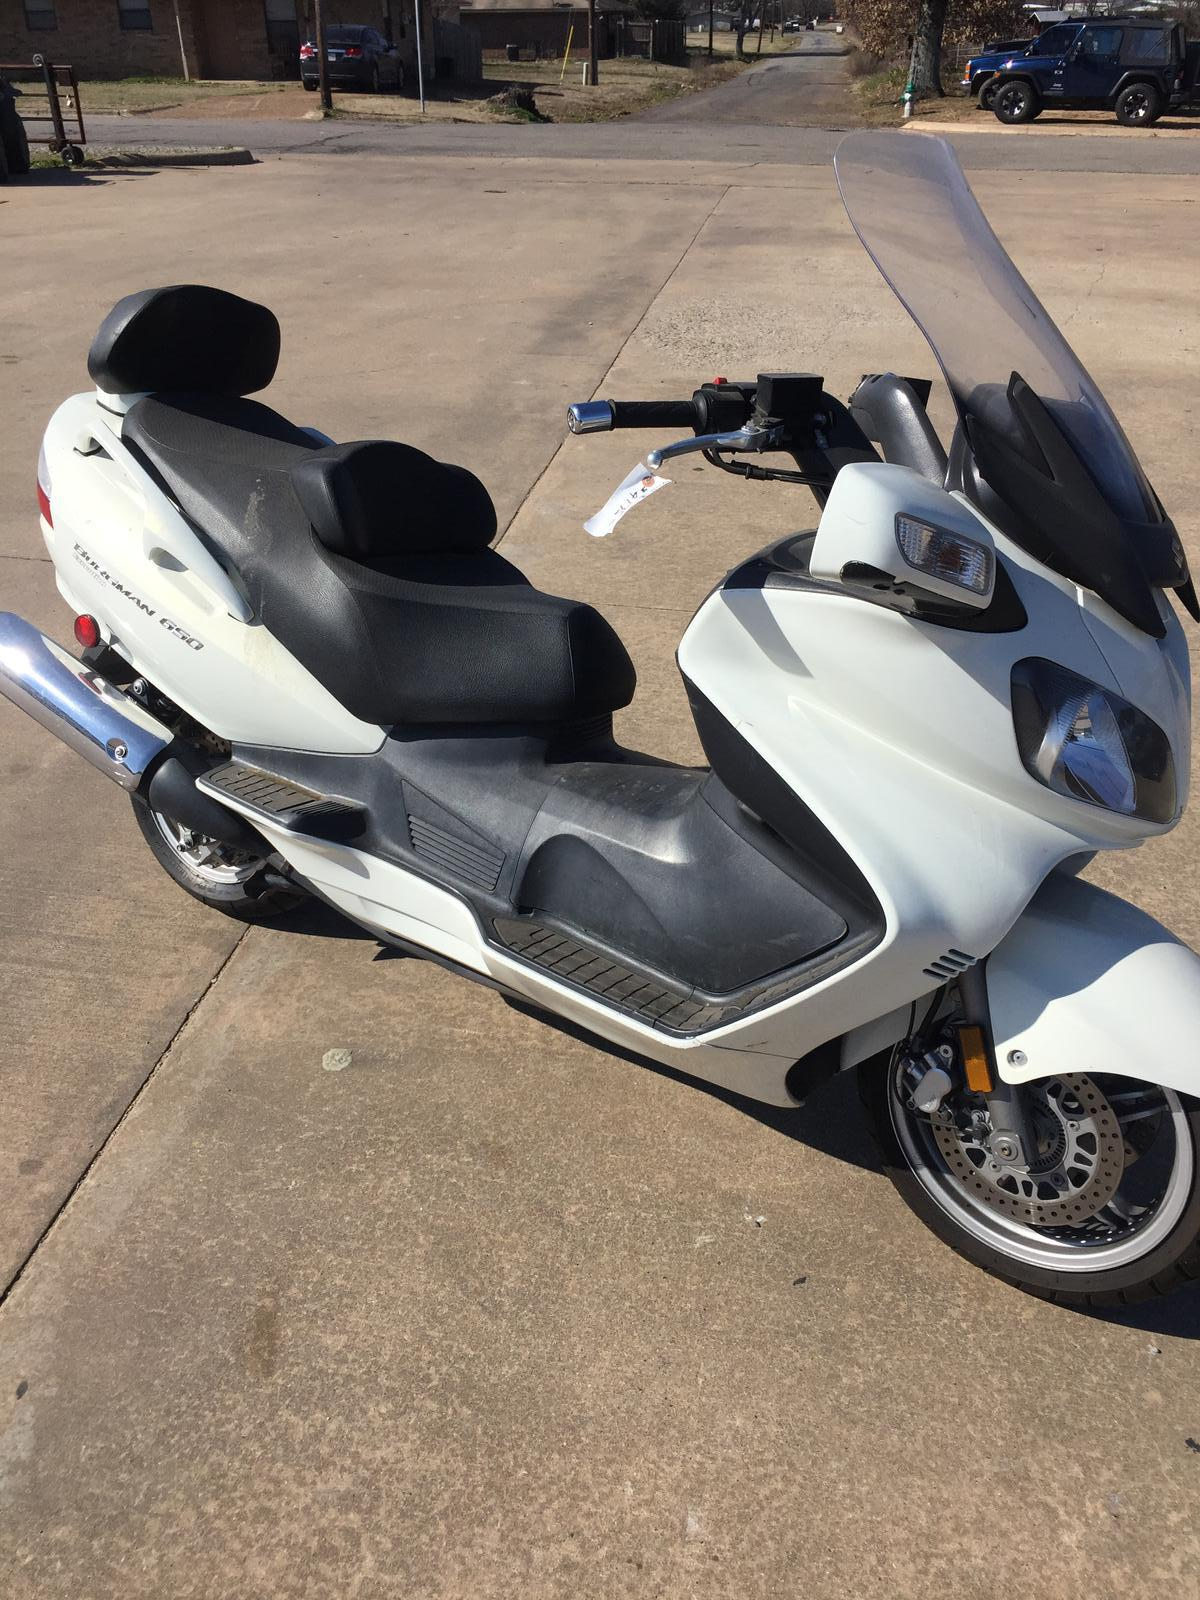 2011 Suzuki burgman 650 for sale in Paris, TX | Paris Suzuki ...